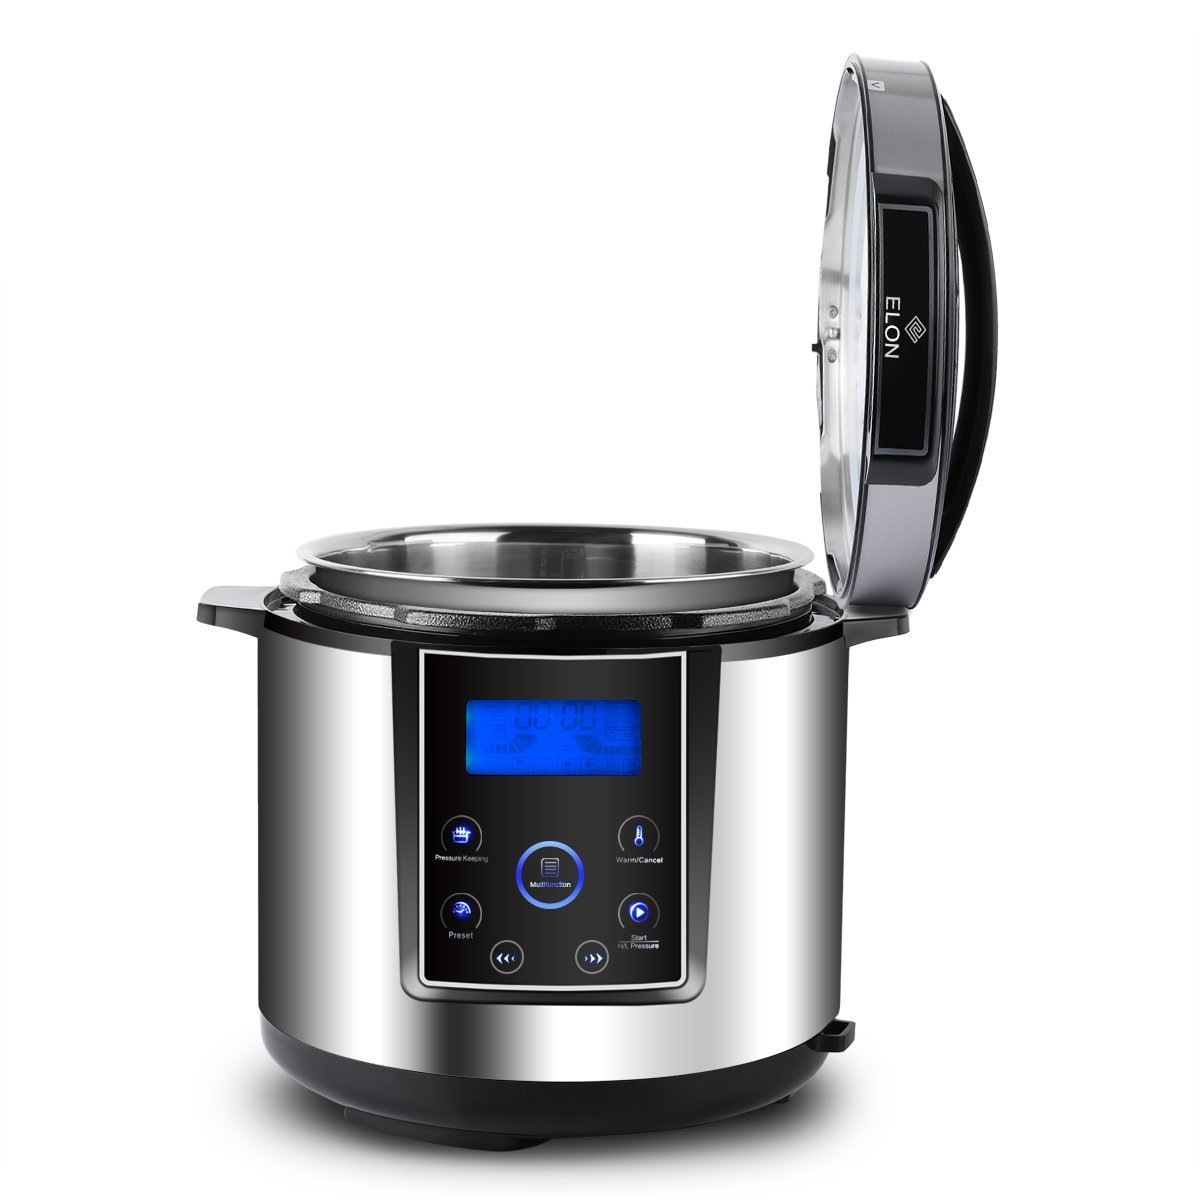 ELON Elite UPGRADED Touch Screen 6 Qt 11-in-1 Multi-Use Programmable Pressure Cooker, Slow Cooker, Rice Cooker, Steamer, Sauté, Yogurt Maker and Warmer. FAST Cooker with TRIPLE Sealed Lid (6 QT)